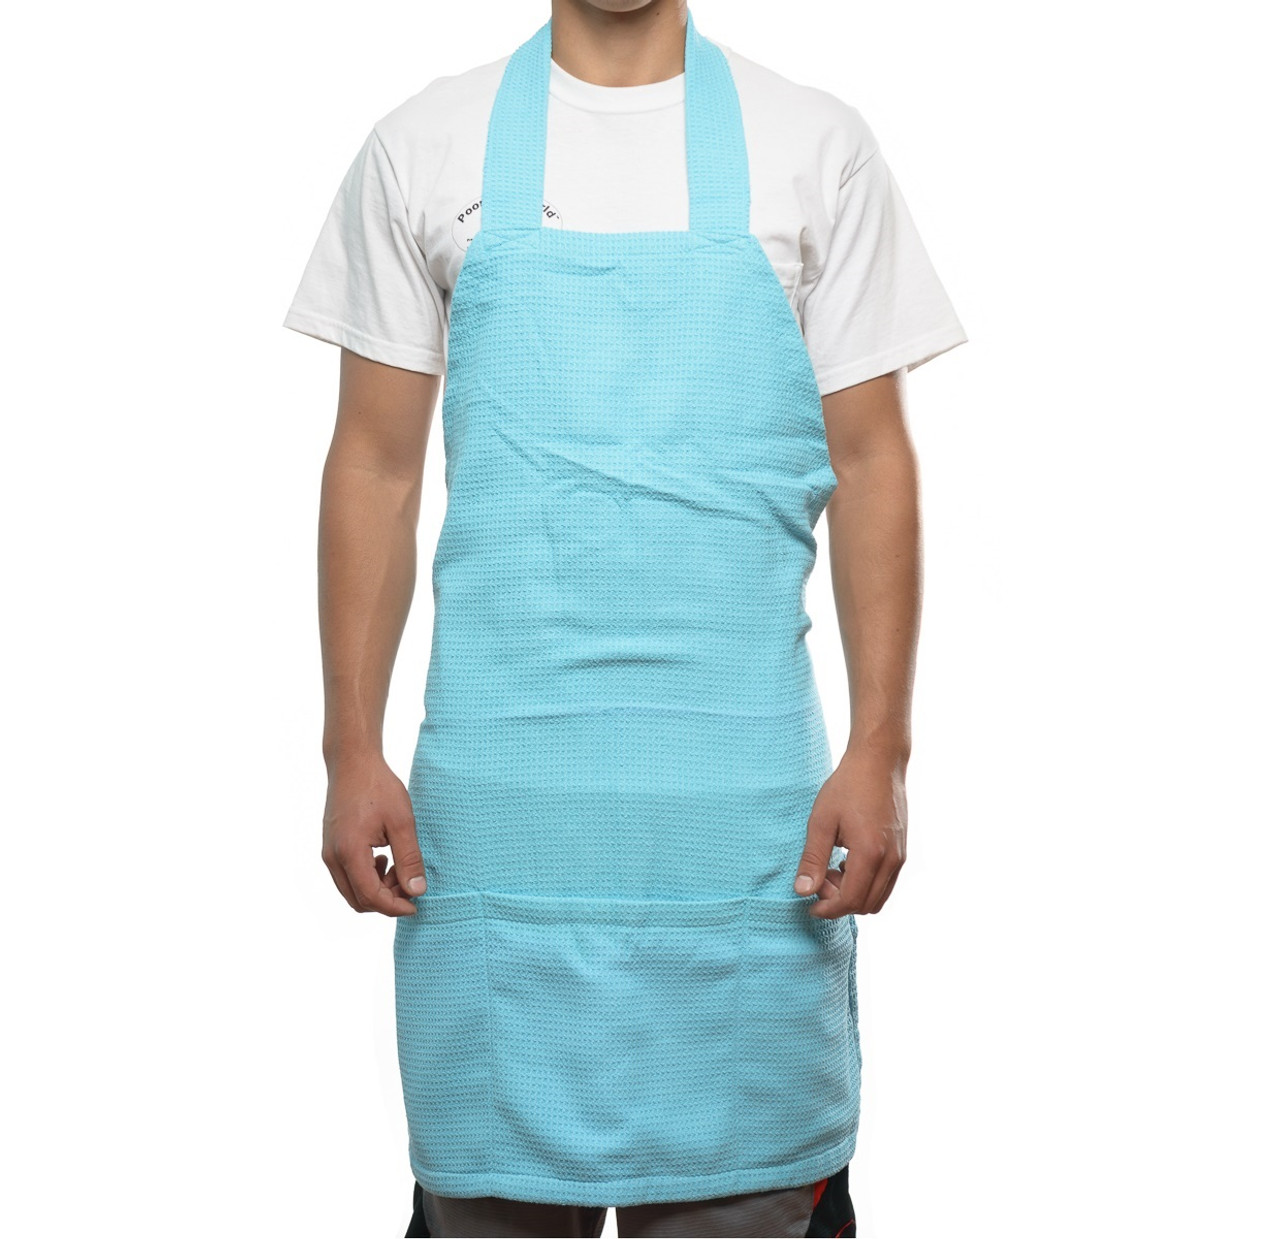 Poorboy's World Waffle Weave Microfiber Detailing Apron